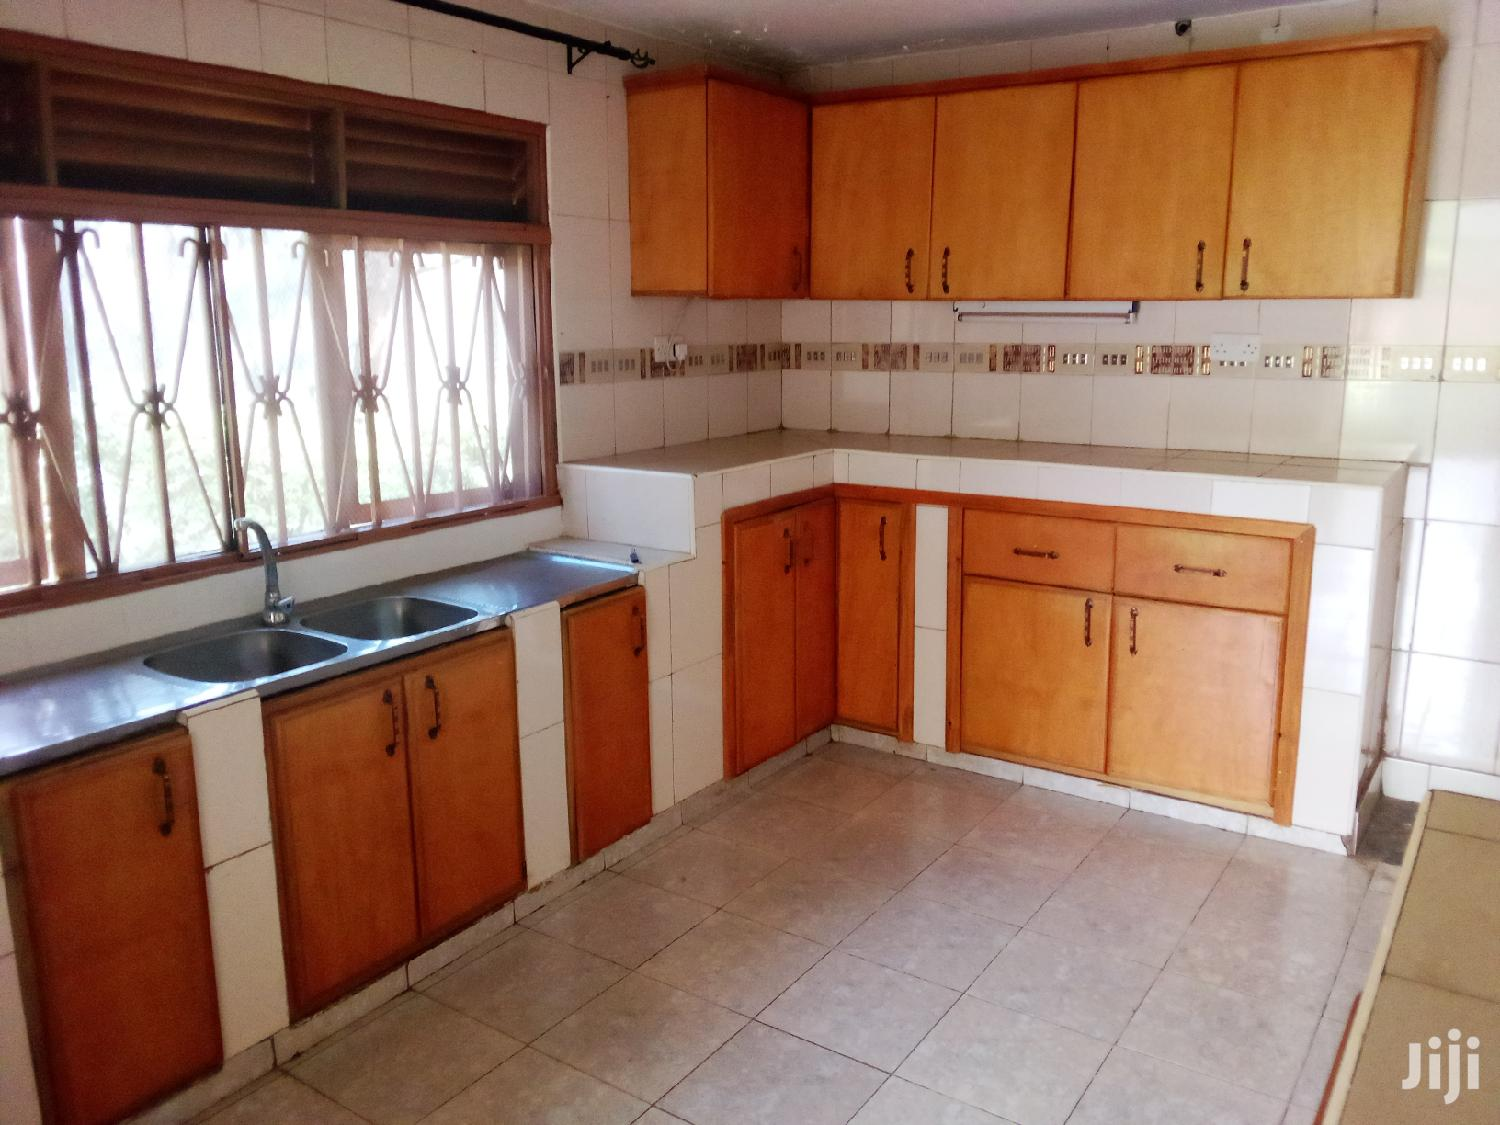 3 Bedrooms House At Muyenga For Rent   Houses & Apartments For Rent for sale in Kampala, Central Region, Uganda